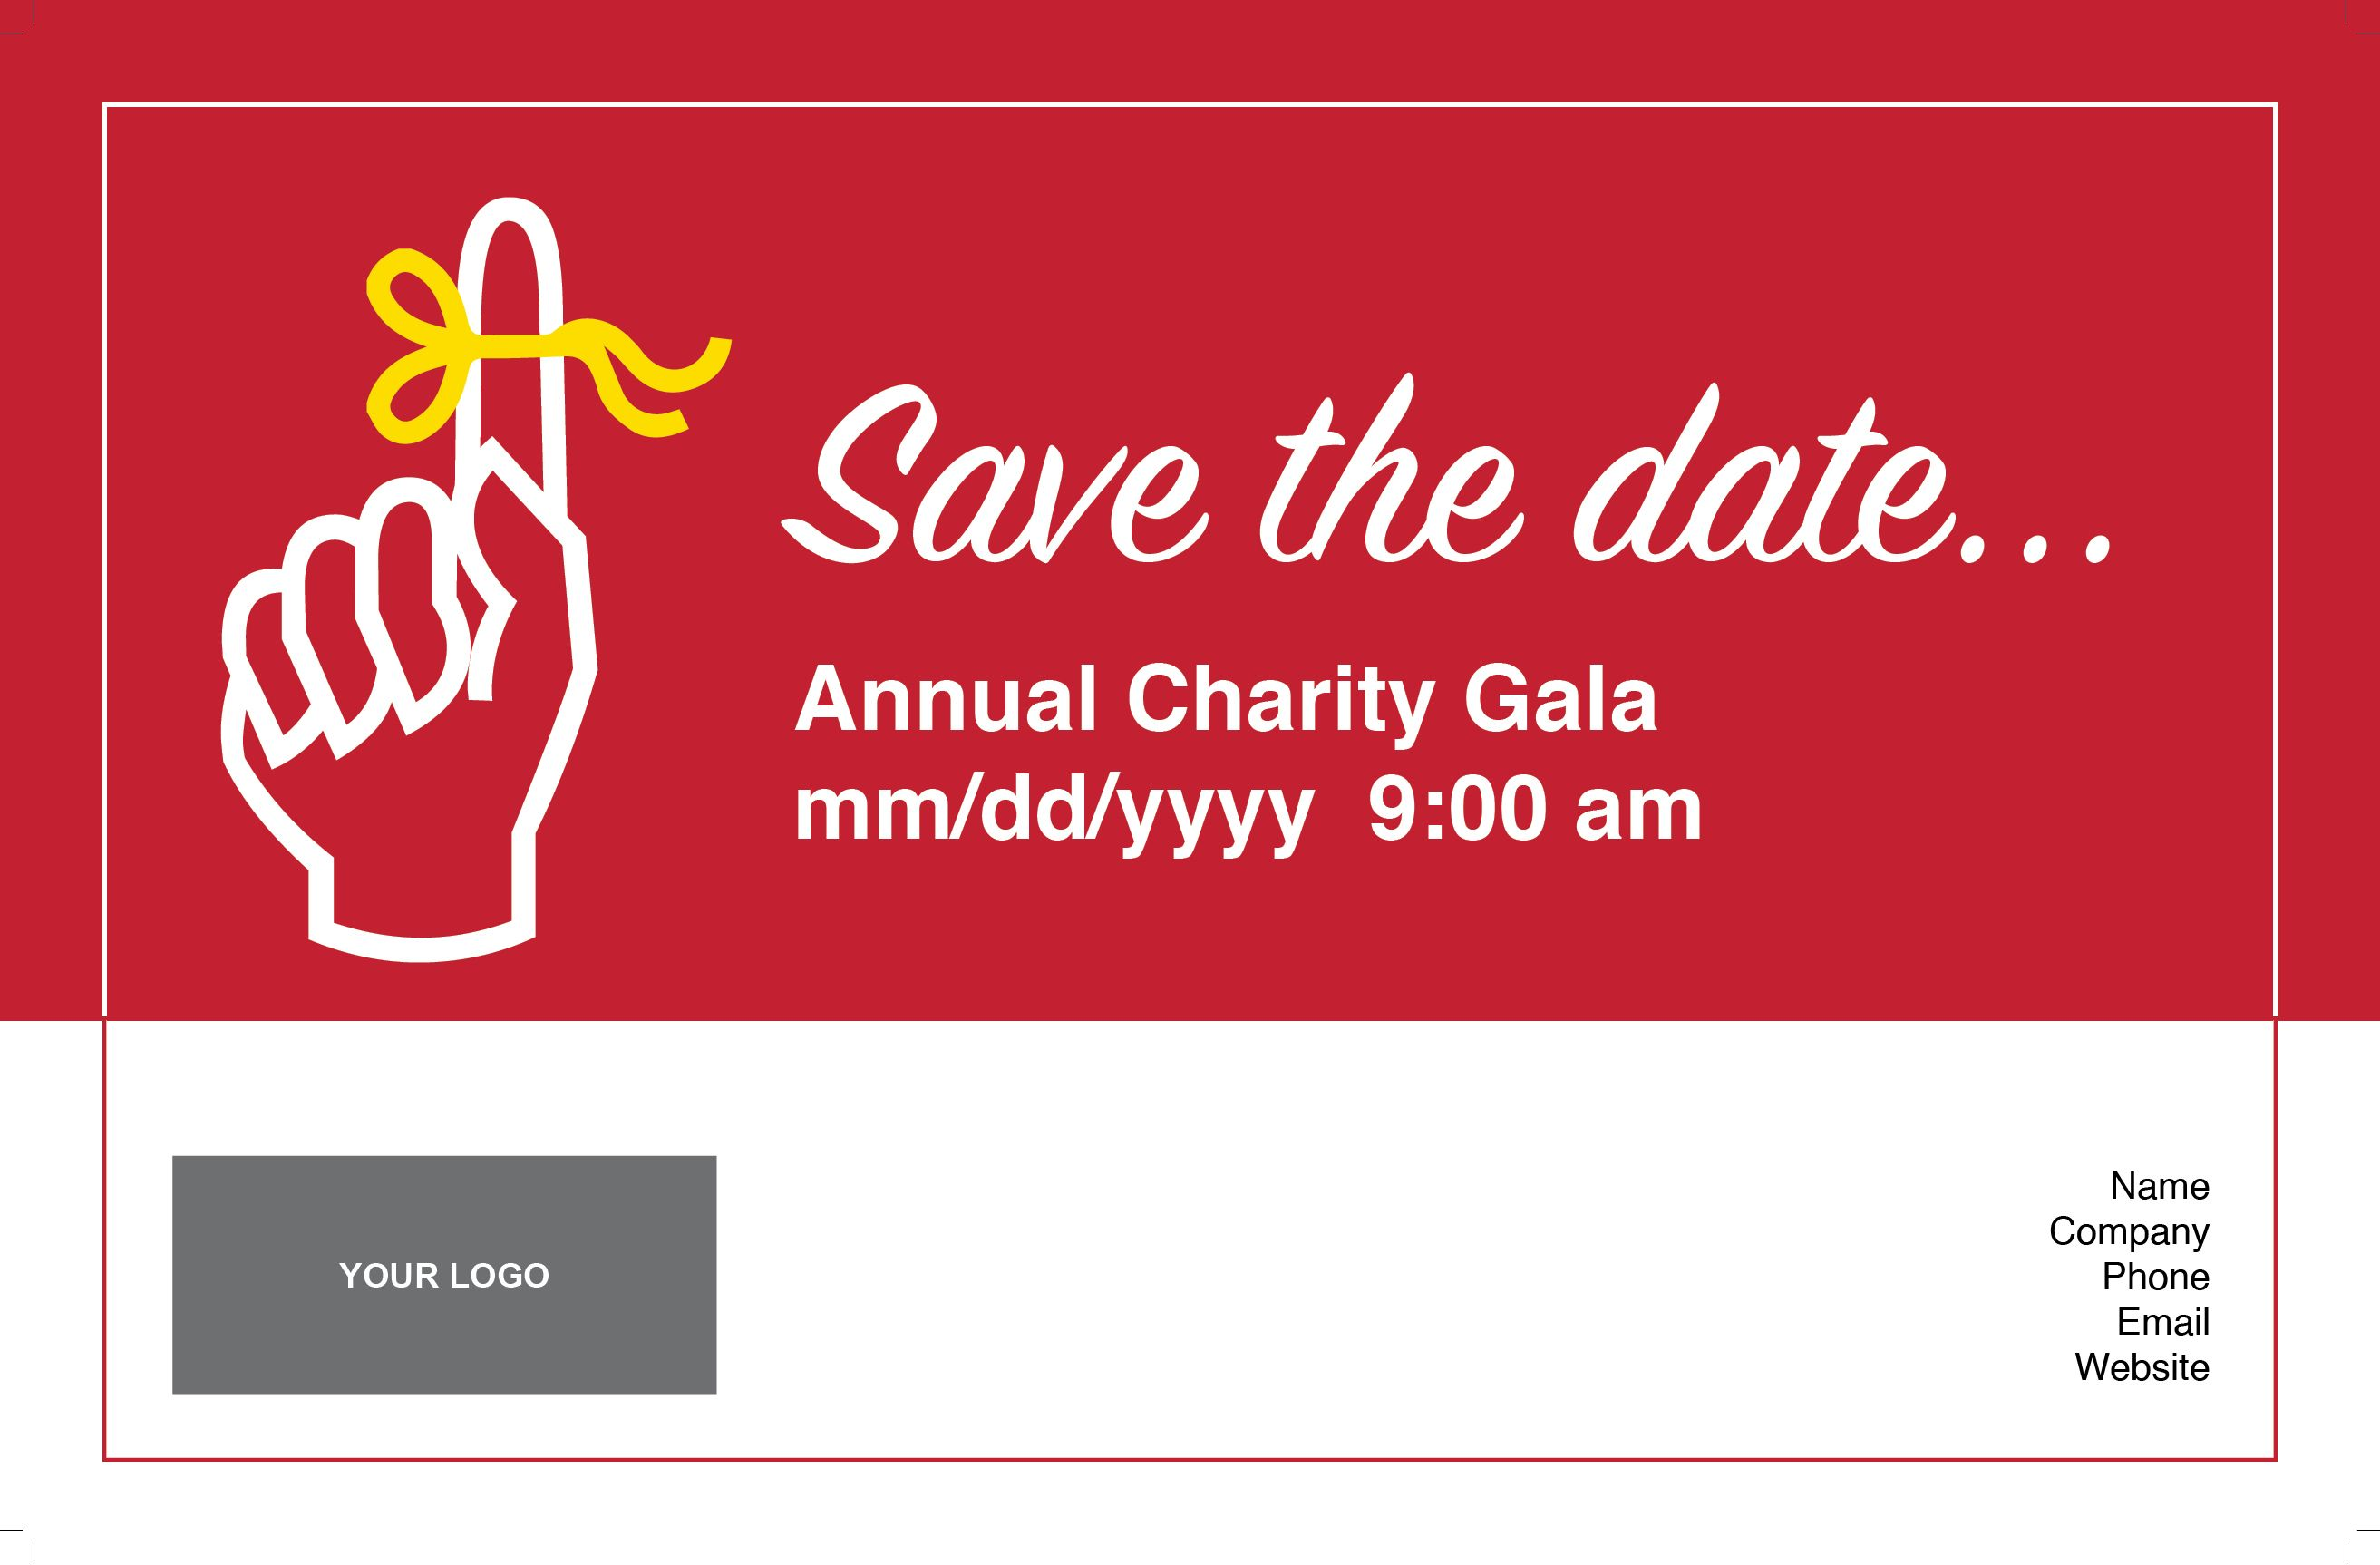 Save The Date #9801B